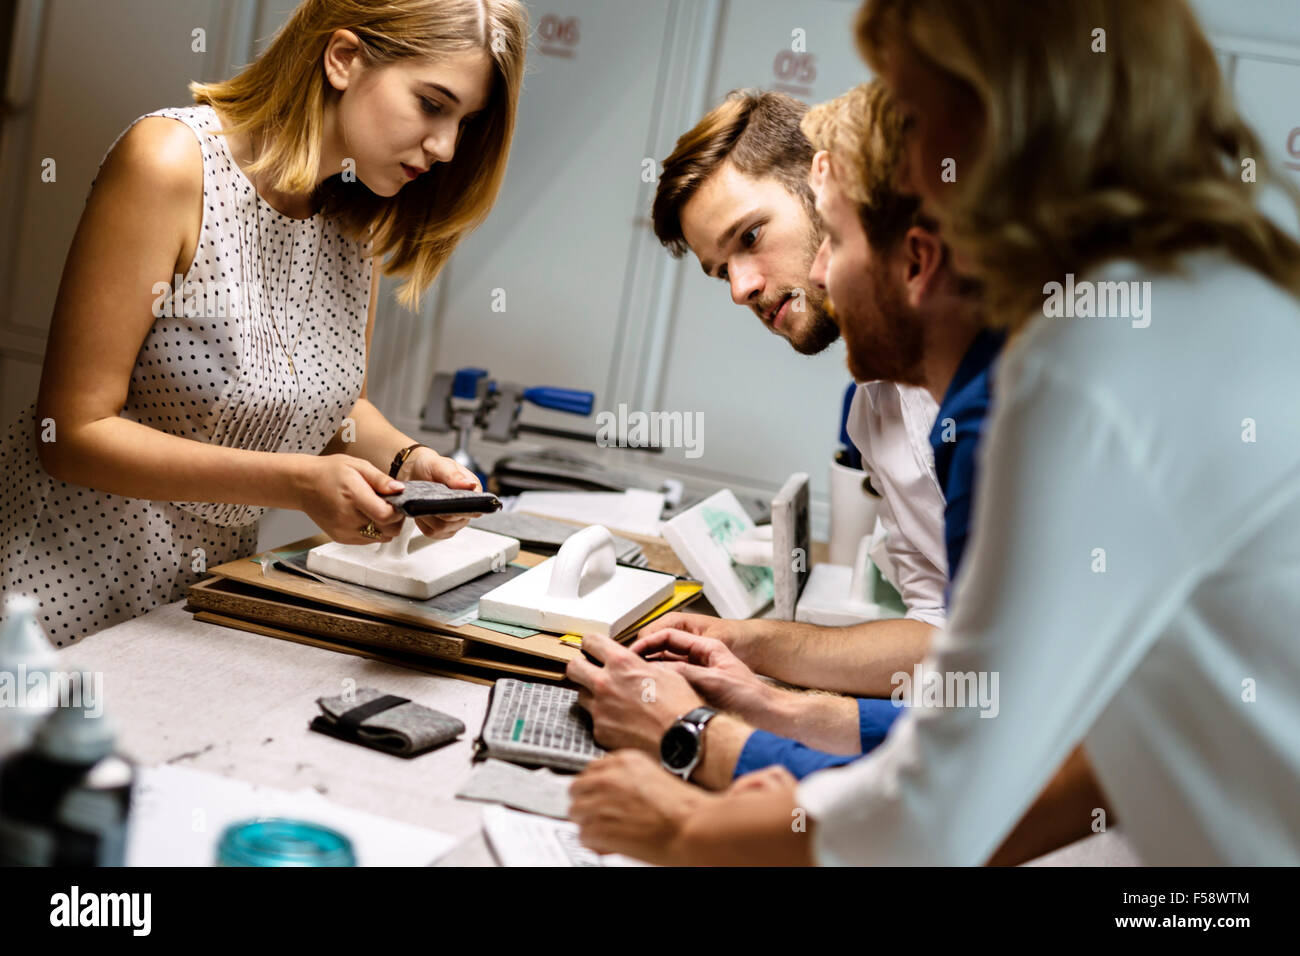 creative coworkers putting their imagination to the test in designing clothes - Stock Image